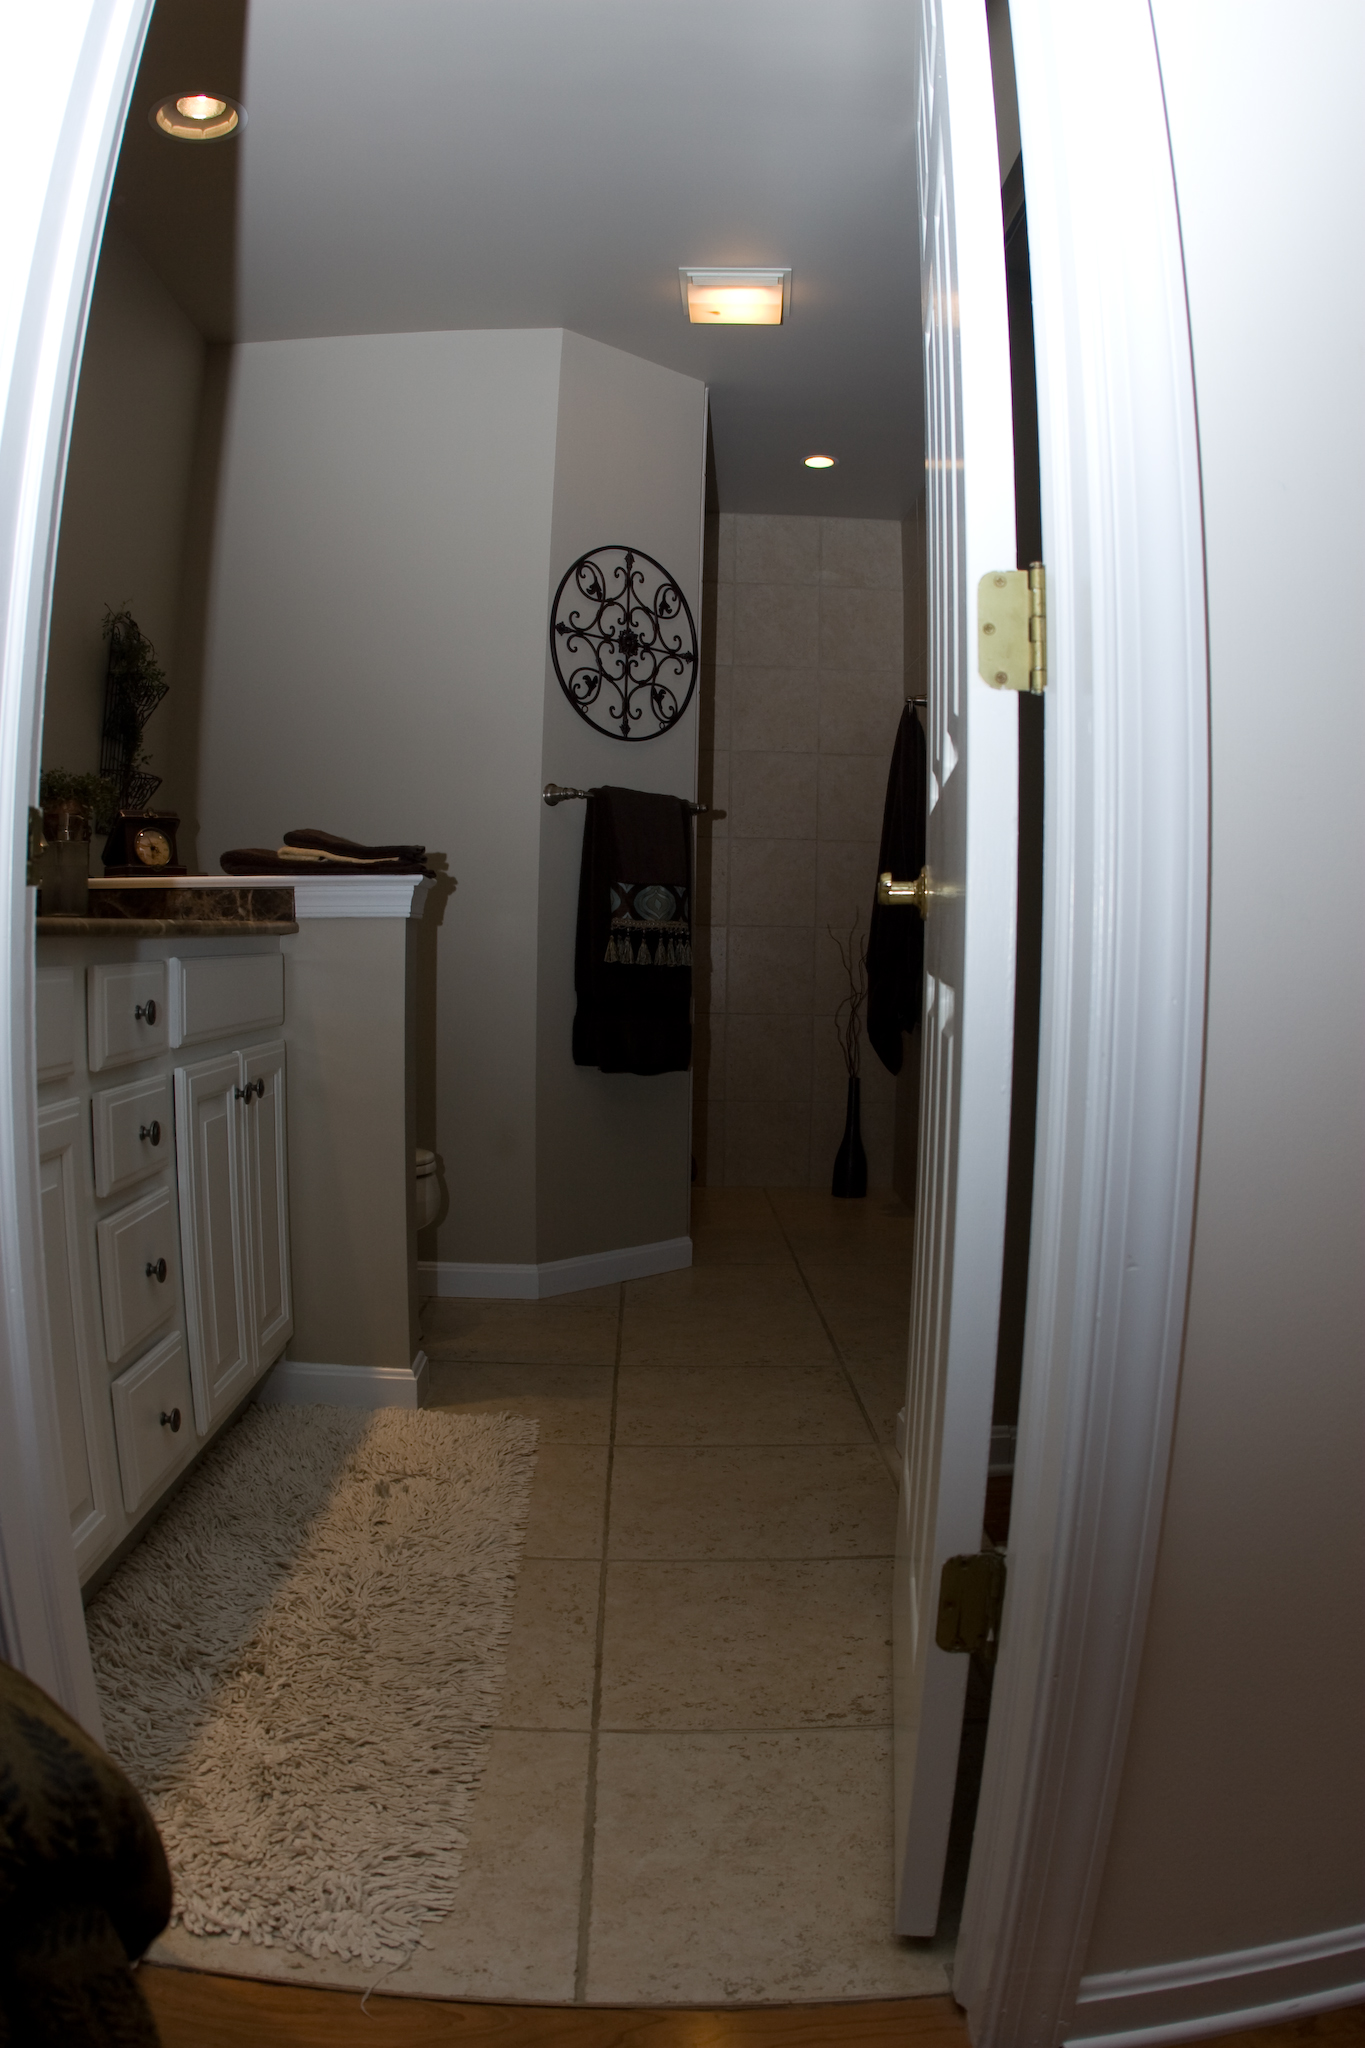 Mbc accessible bathroom featured in new book and lancaster for Bathroom remodeling lancaster pa